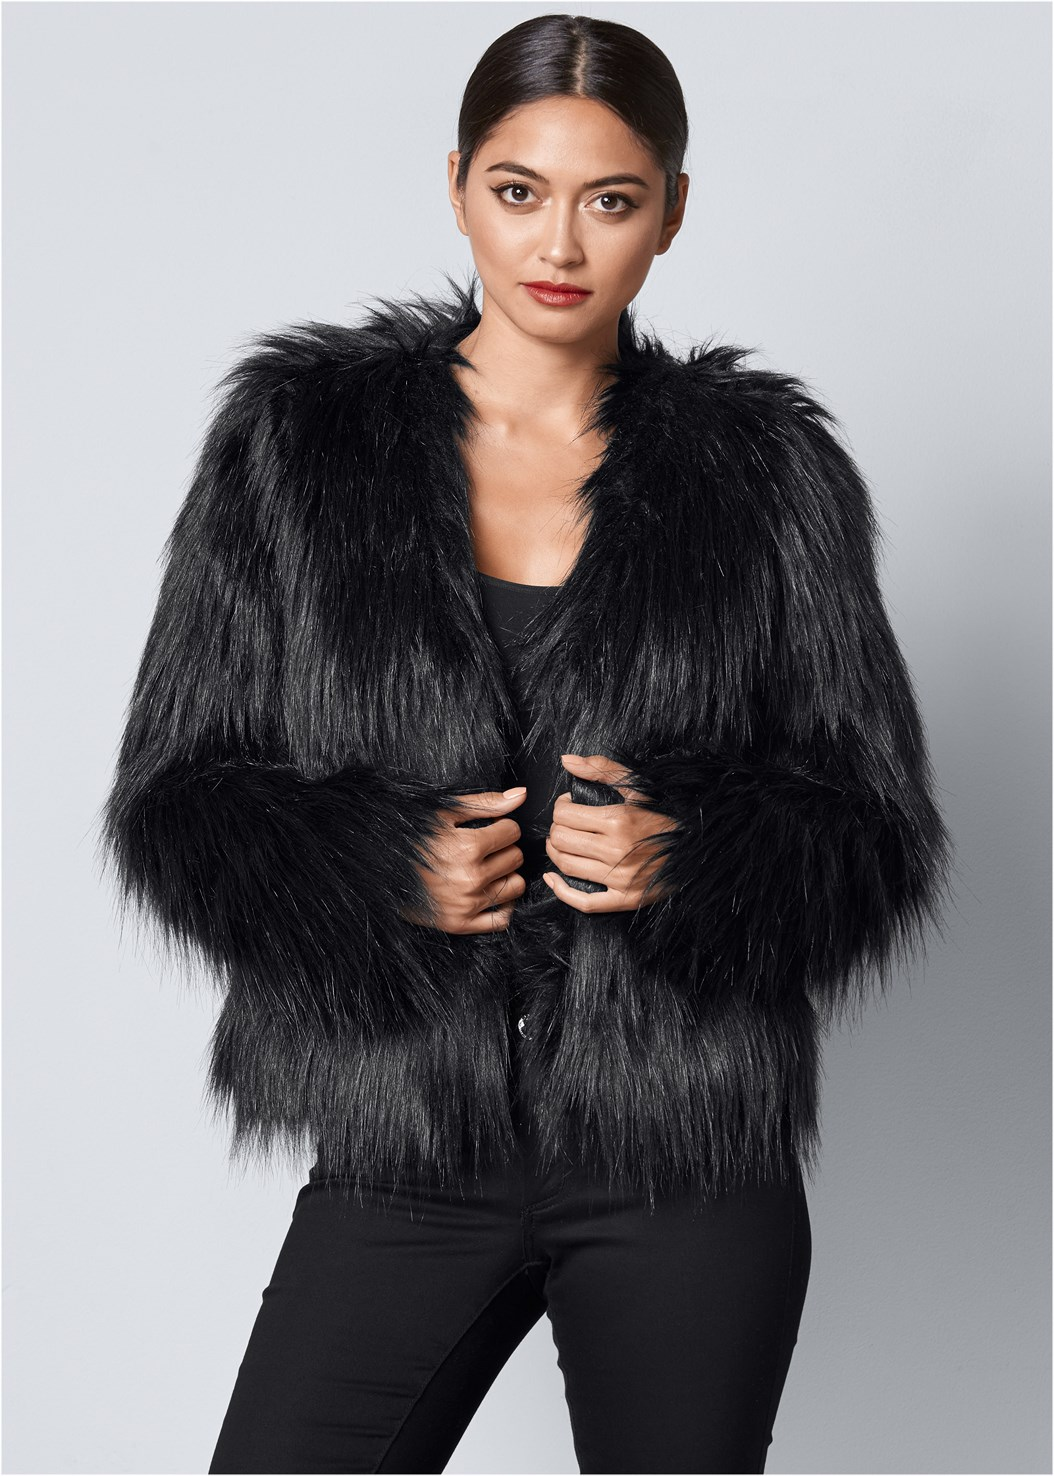 Faux Fur Jacket,Seamless Cami,Mid Rise Color Skinny Jeans